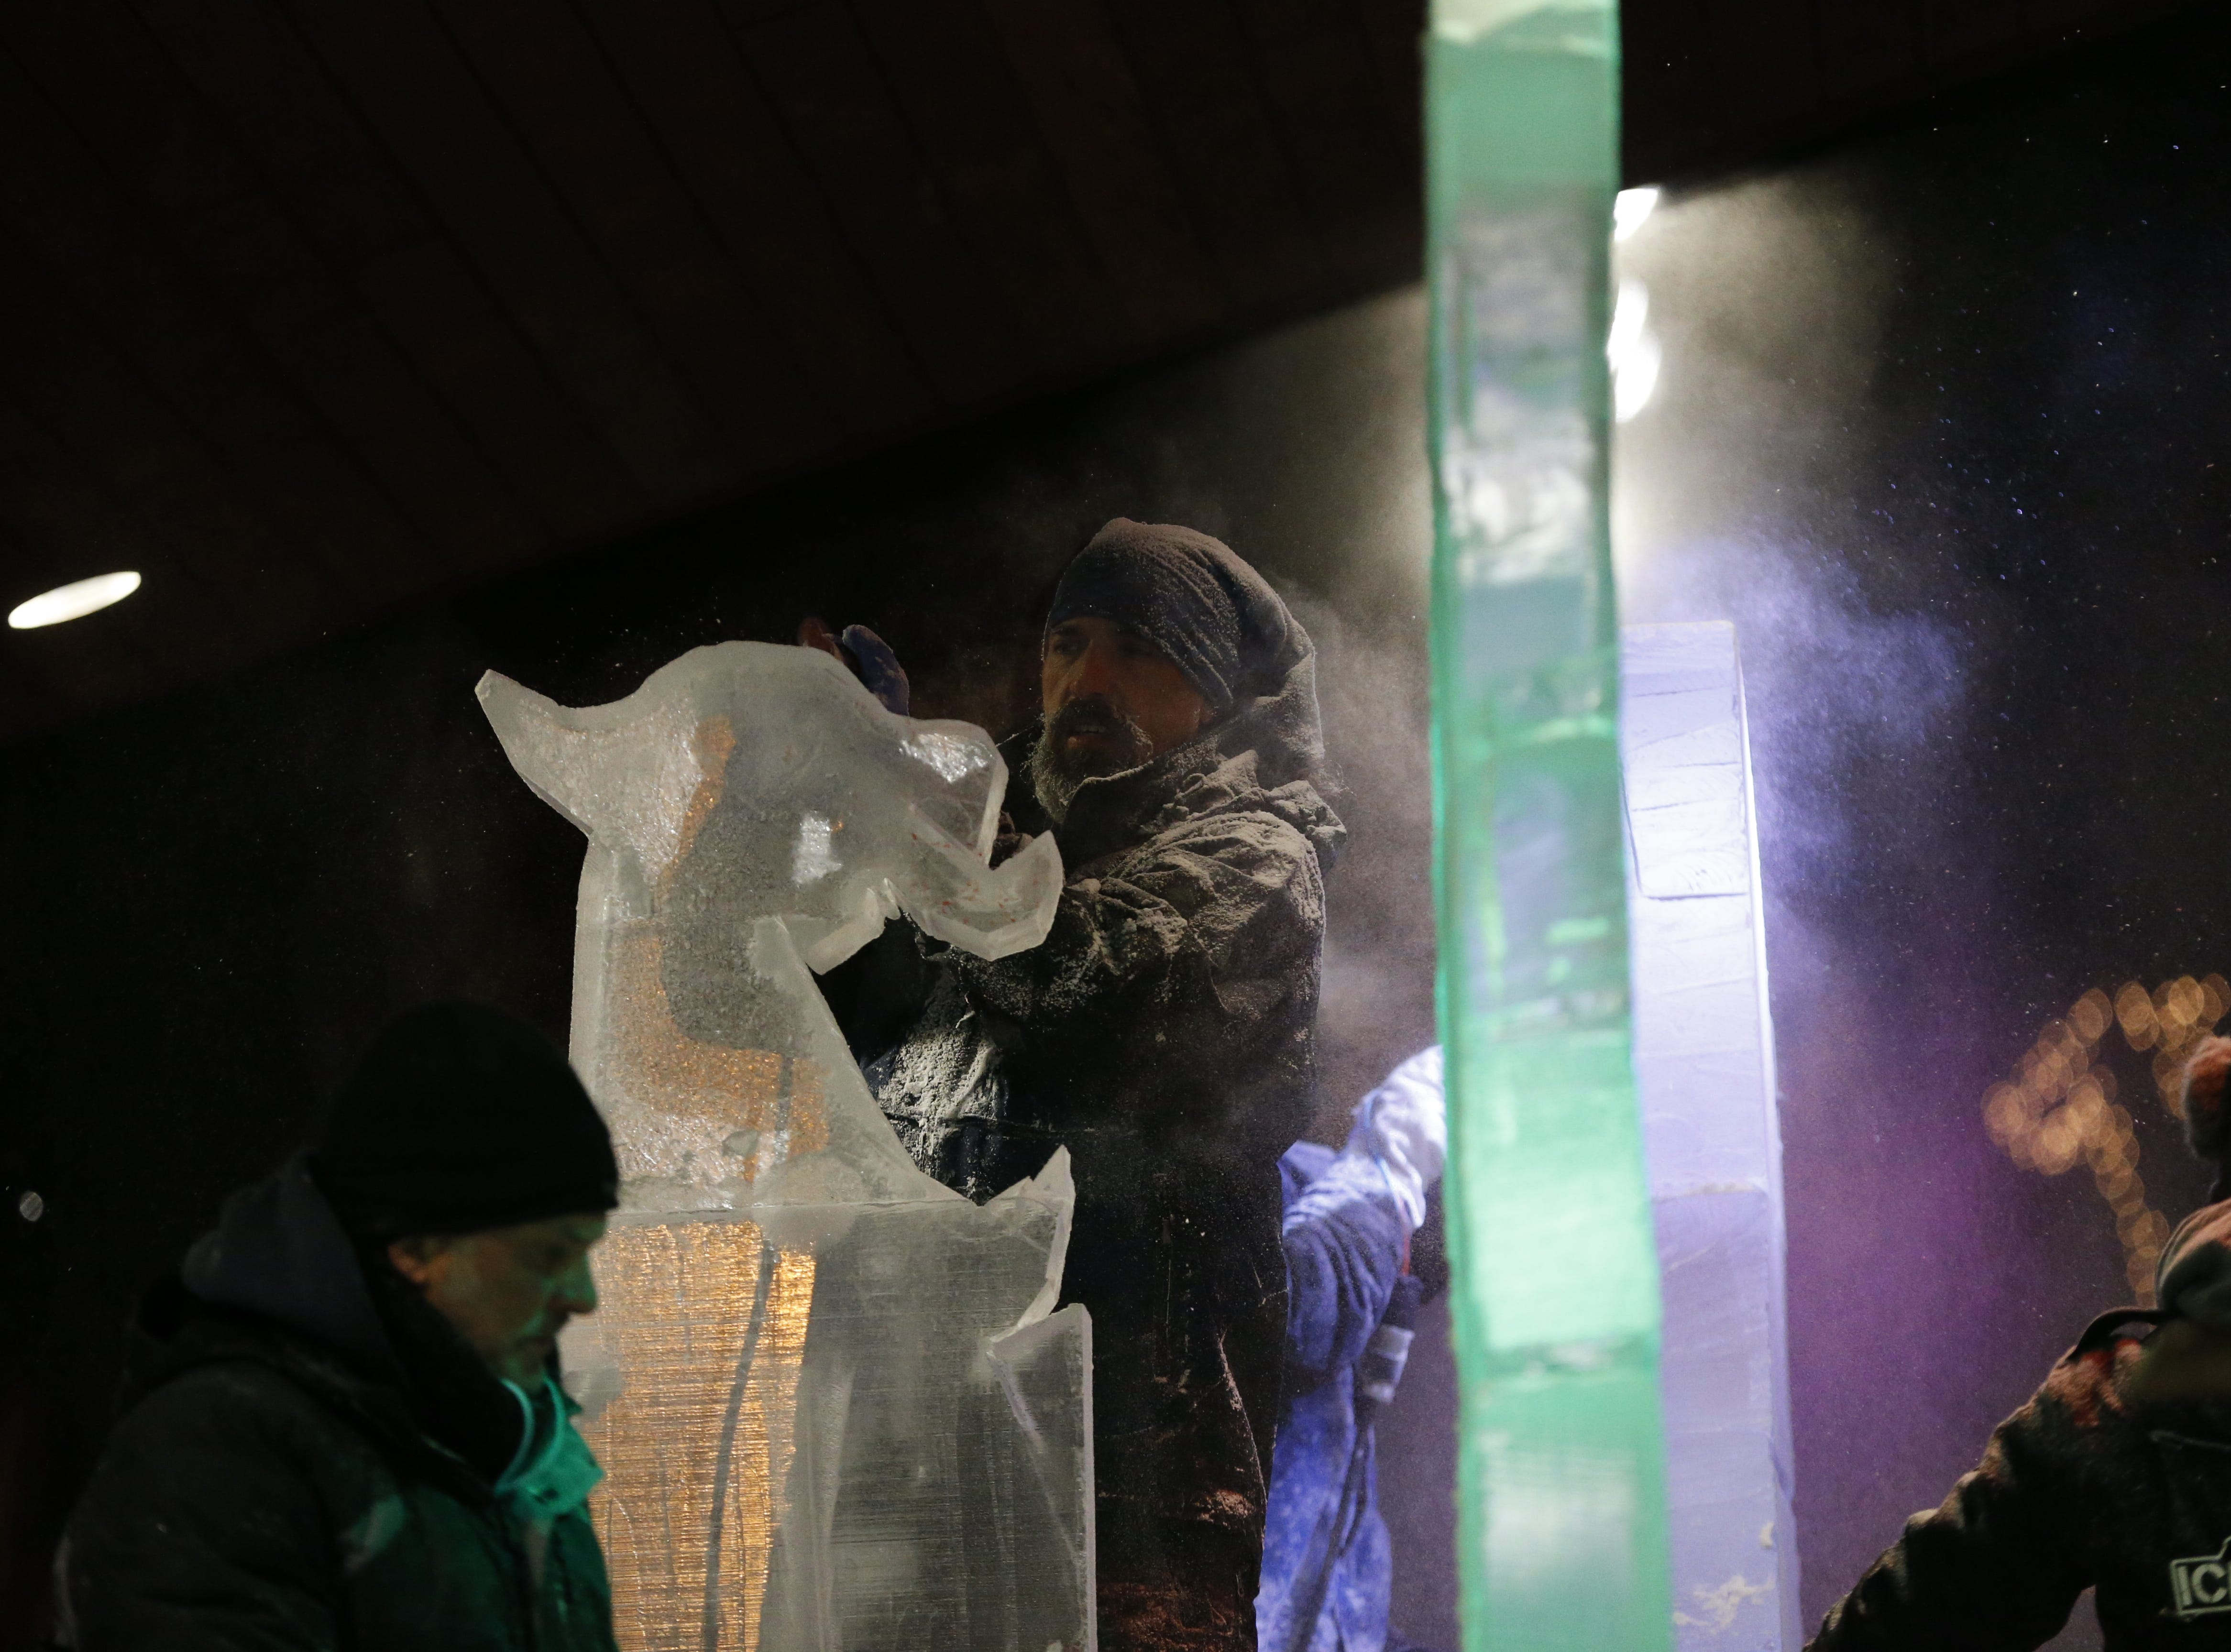 """An ice carver goes to work on one piece of what turned out to be a phoenix sculpture during the Meltdown Winter Ice Festival's """"Big Reveal"""" event on Friday."""